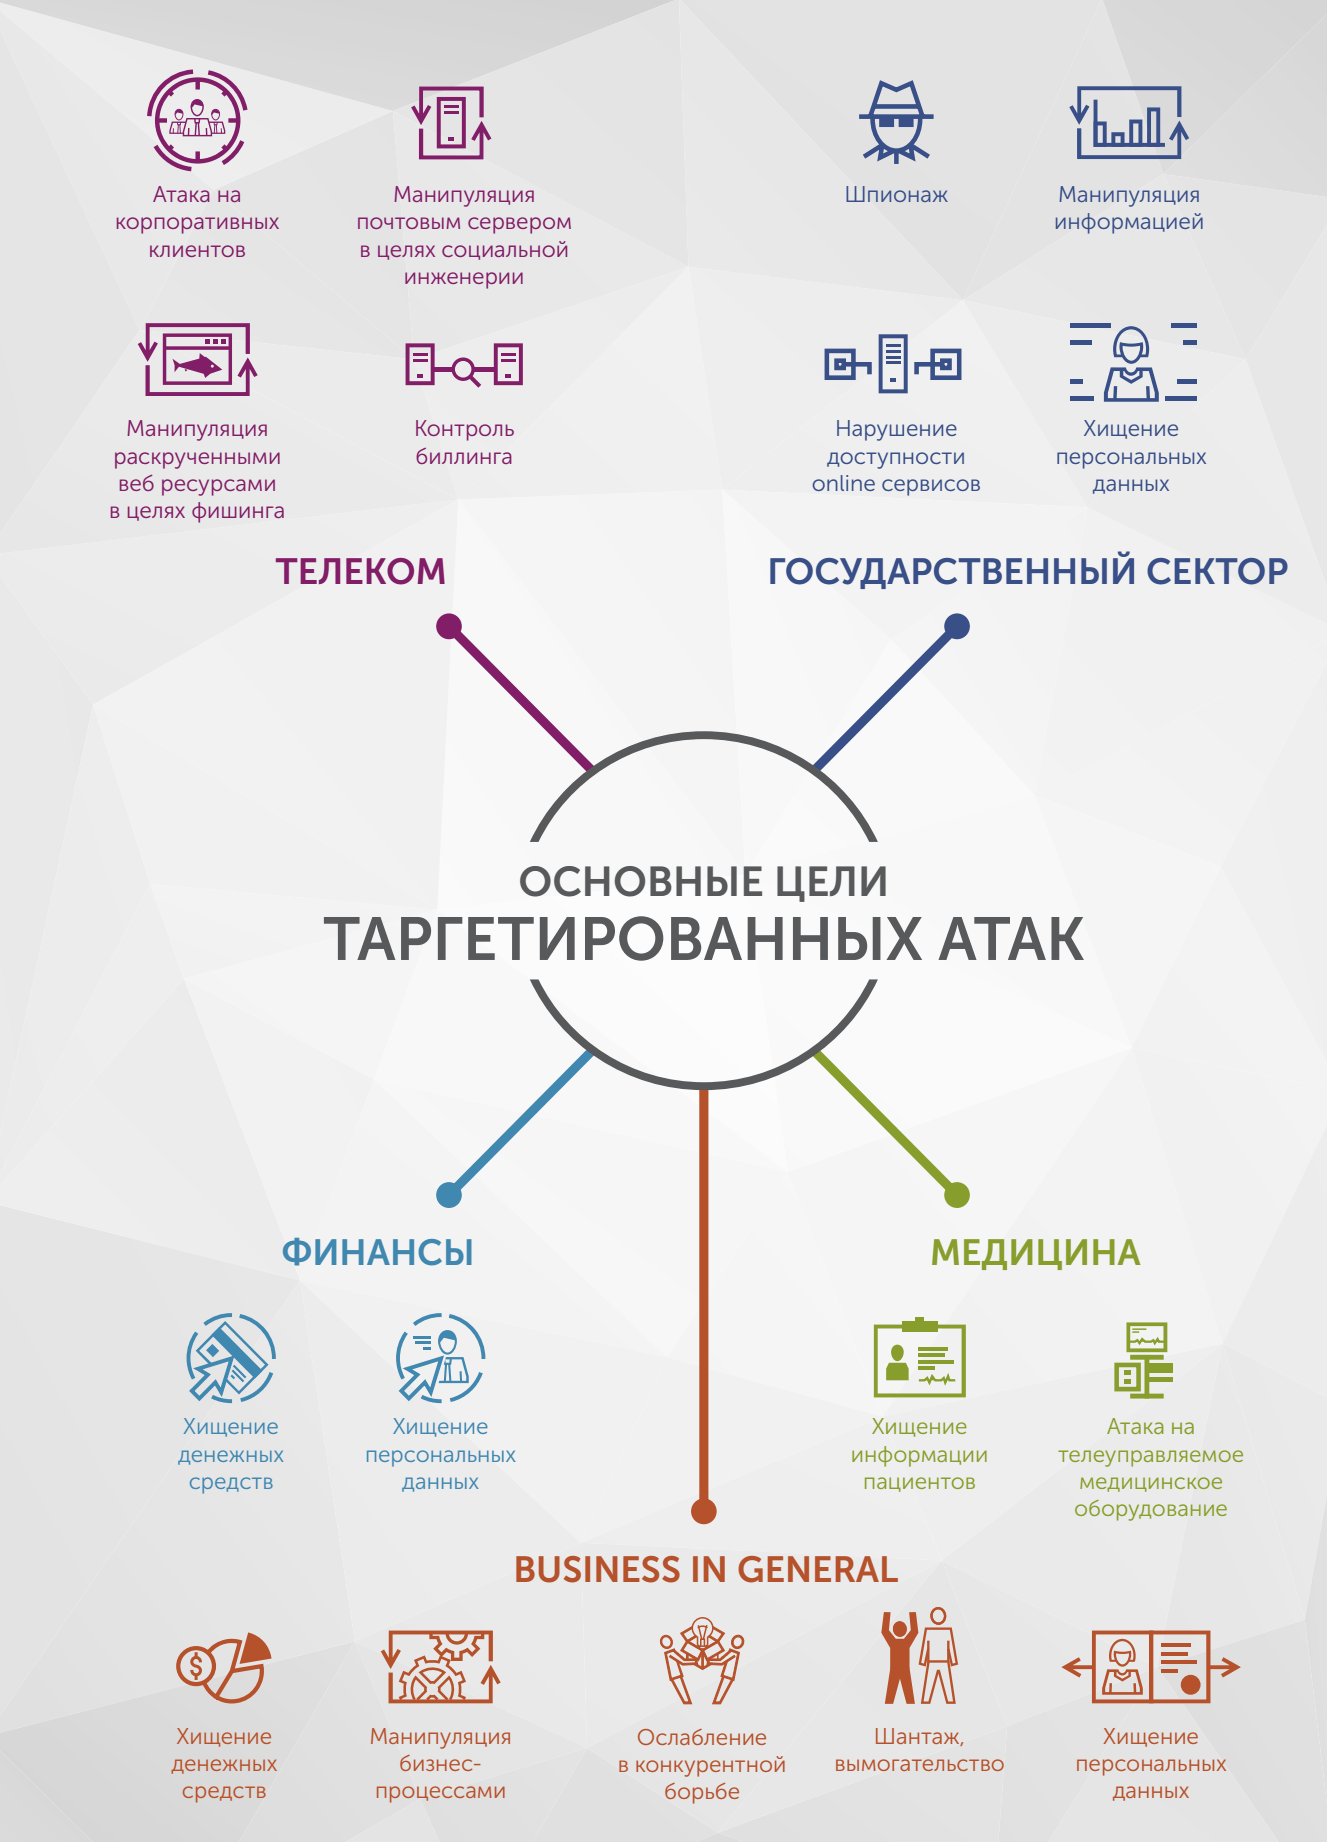 anatomy_of_targeted_attack_img2